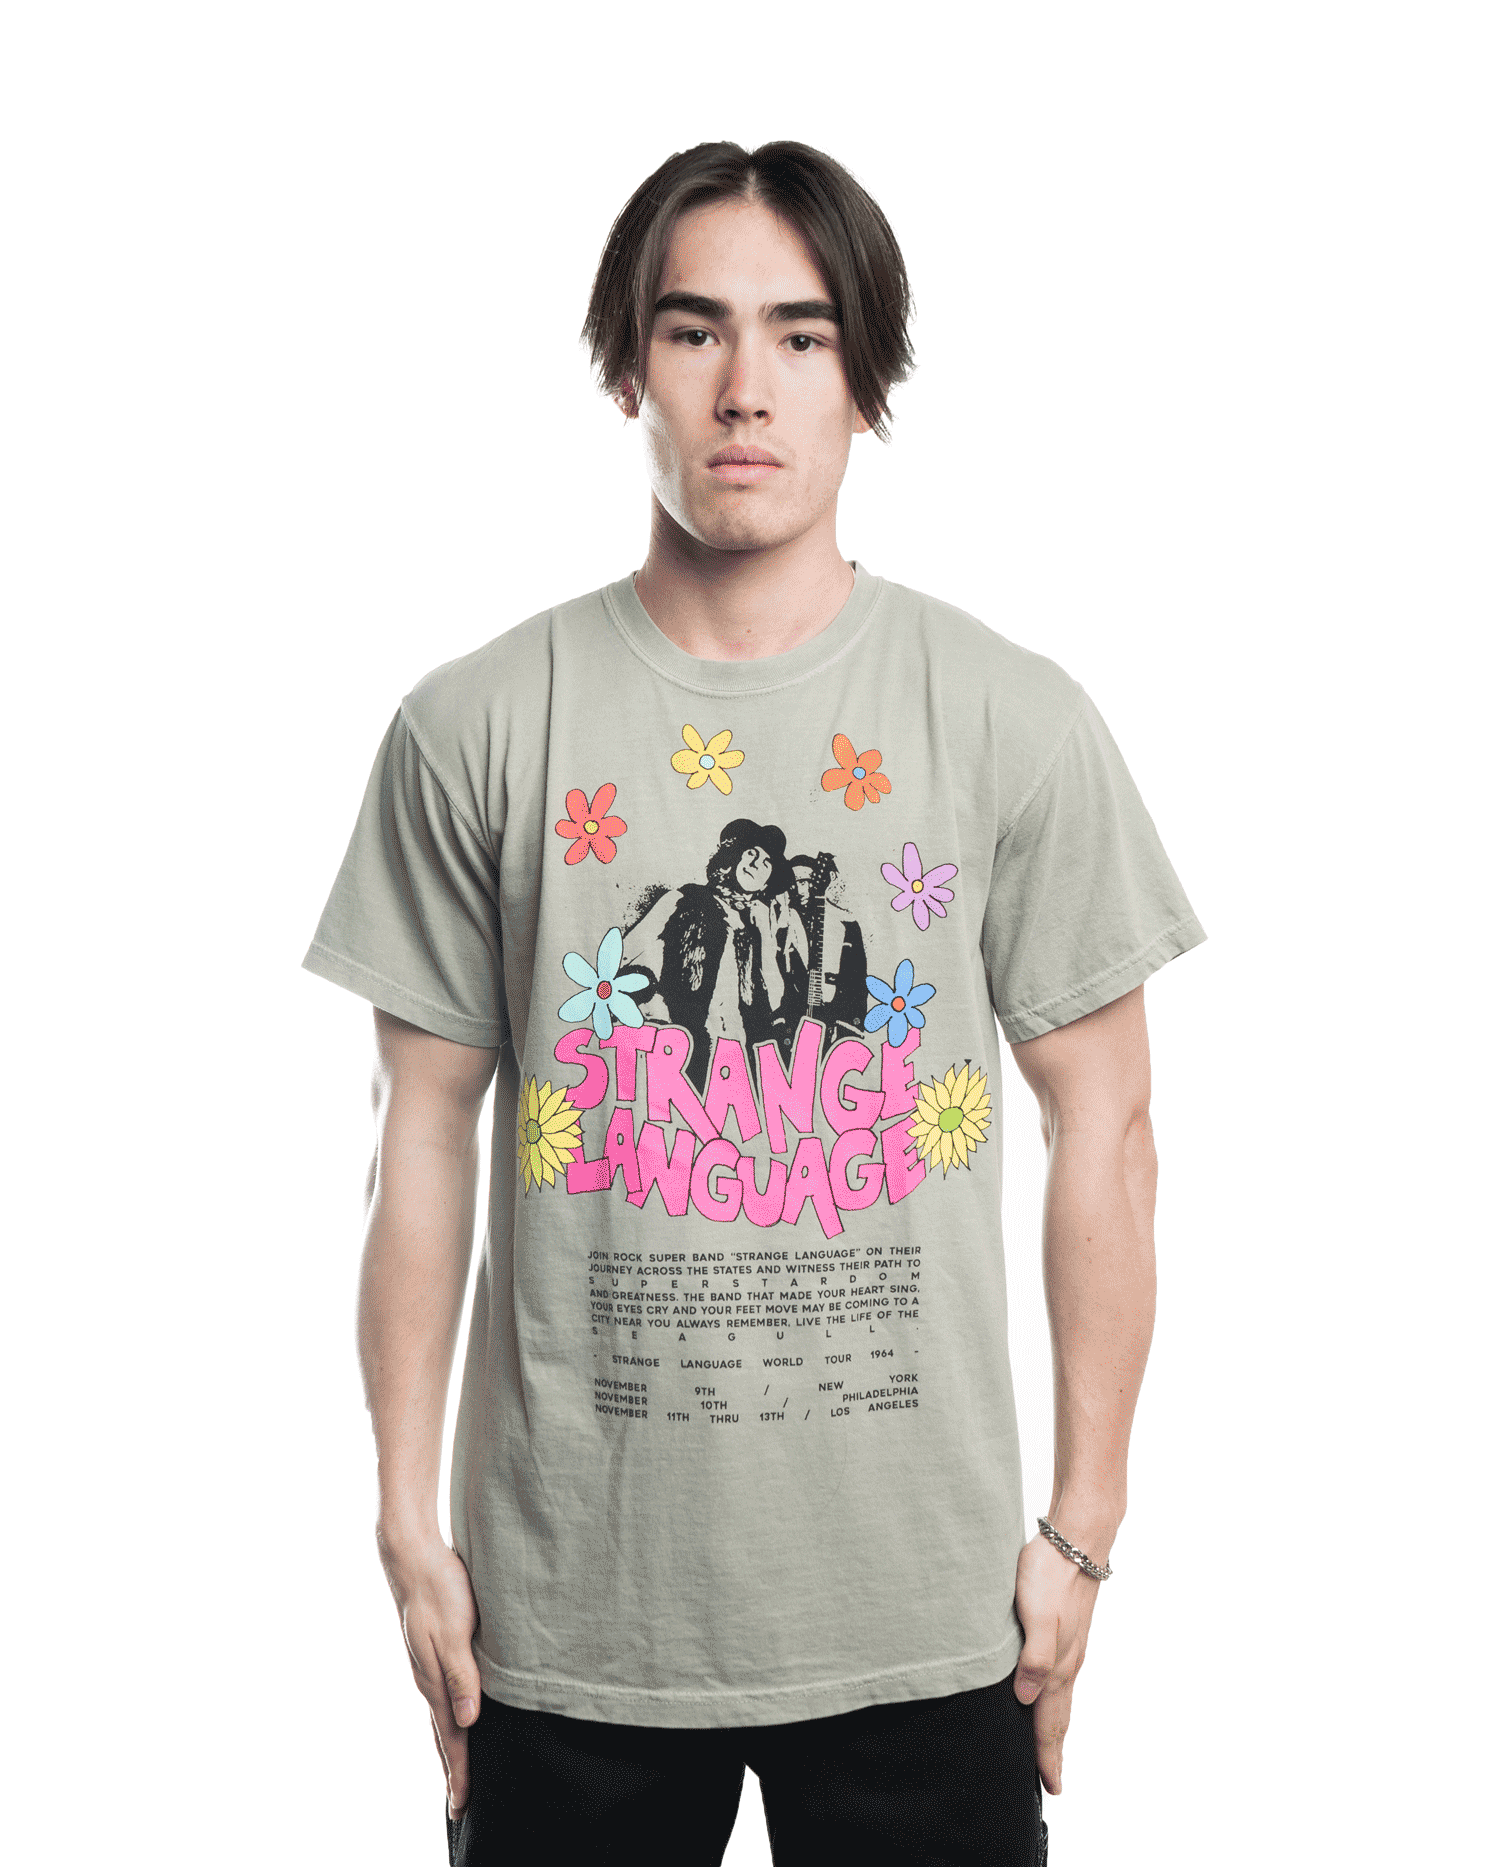 KidSuper Strange Language Tee Cream